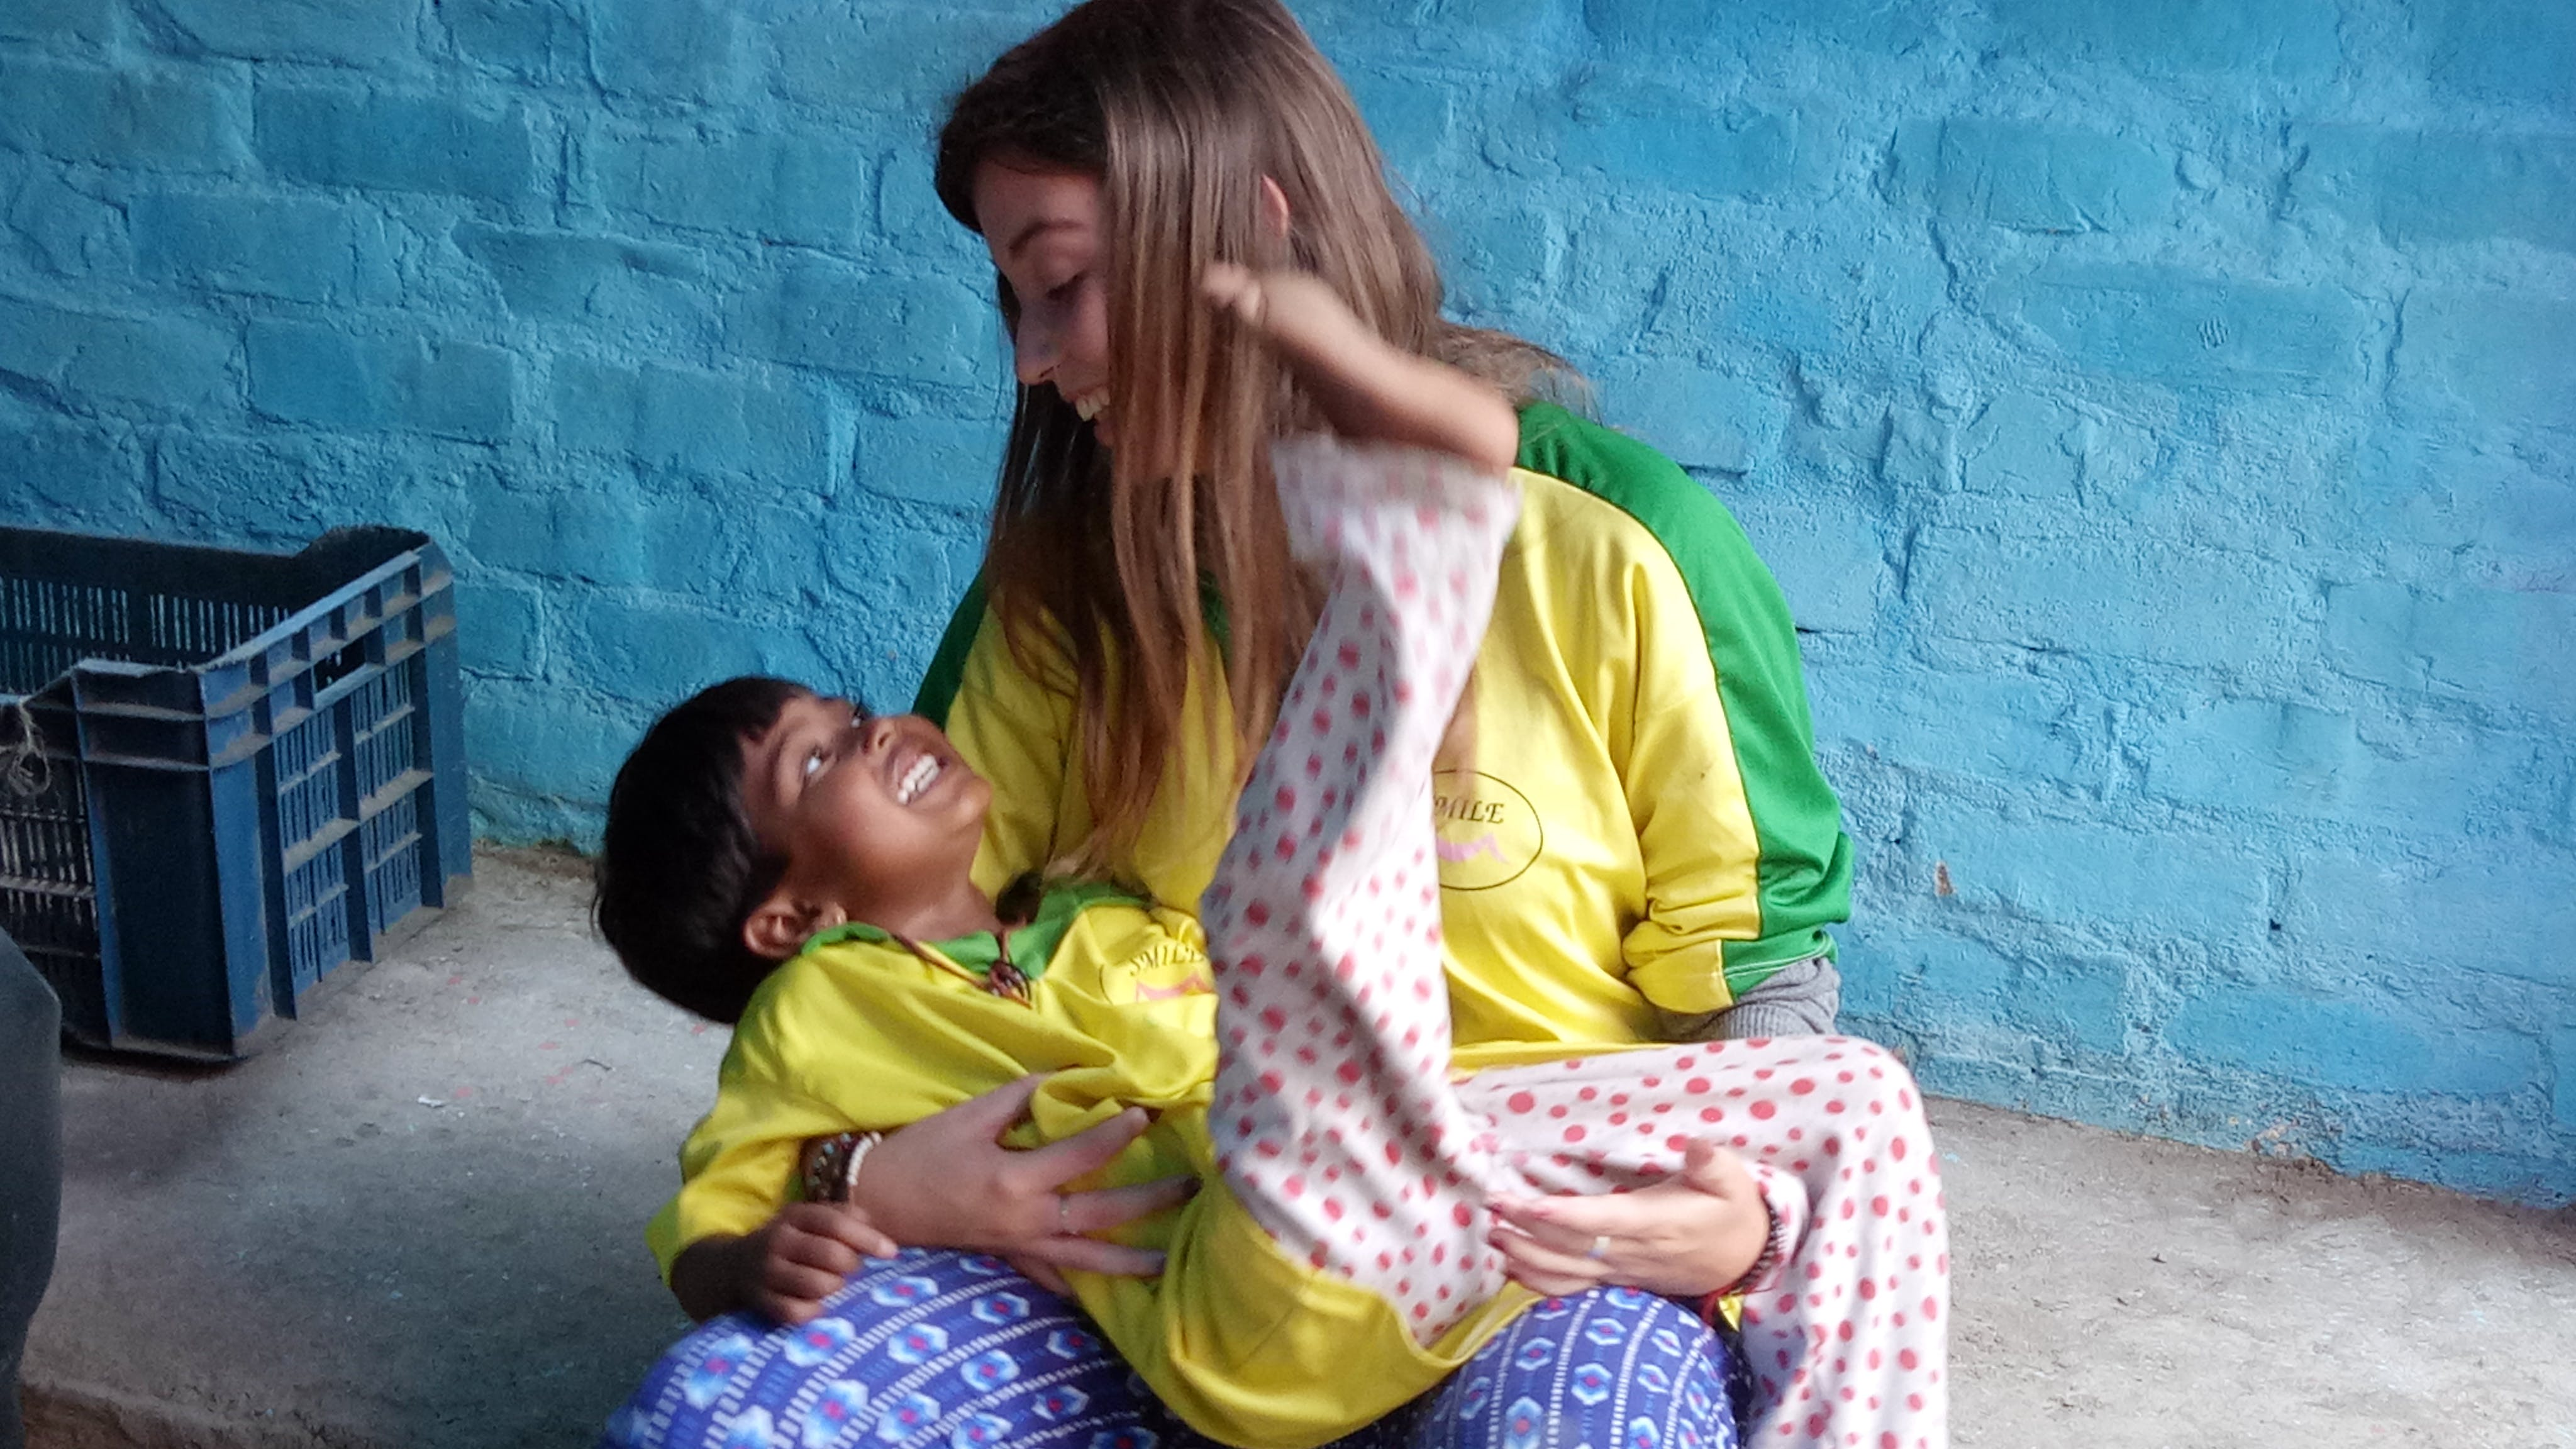 Care Assistant for Street children